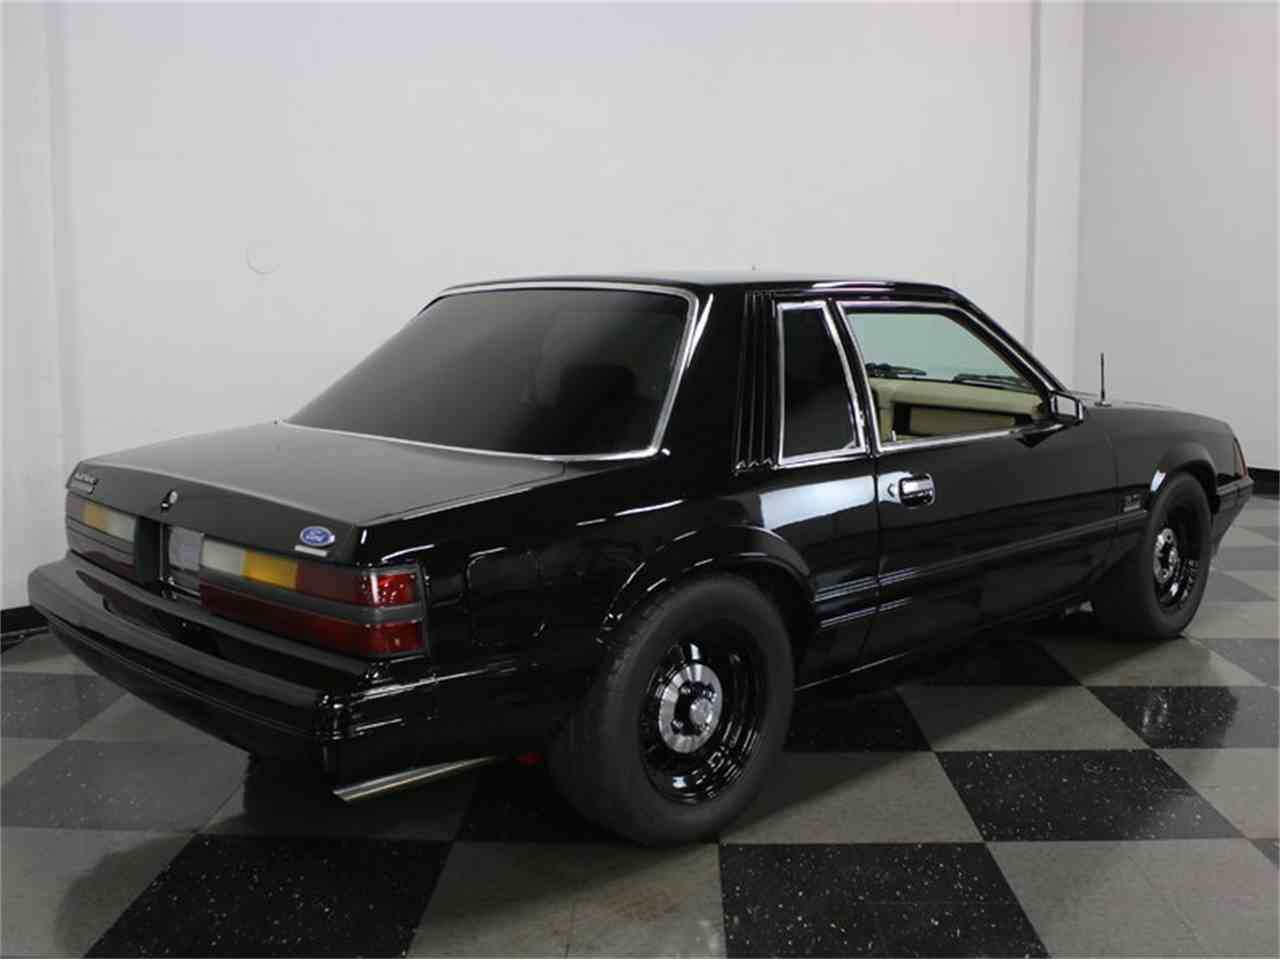 Large Picture of '86 Ford Mustang SSP Interceptor located in Ft Worth Texas - $24,995.00 Offered by Streetside Classics - Dallas / Fort Worth - JZNT